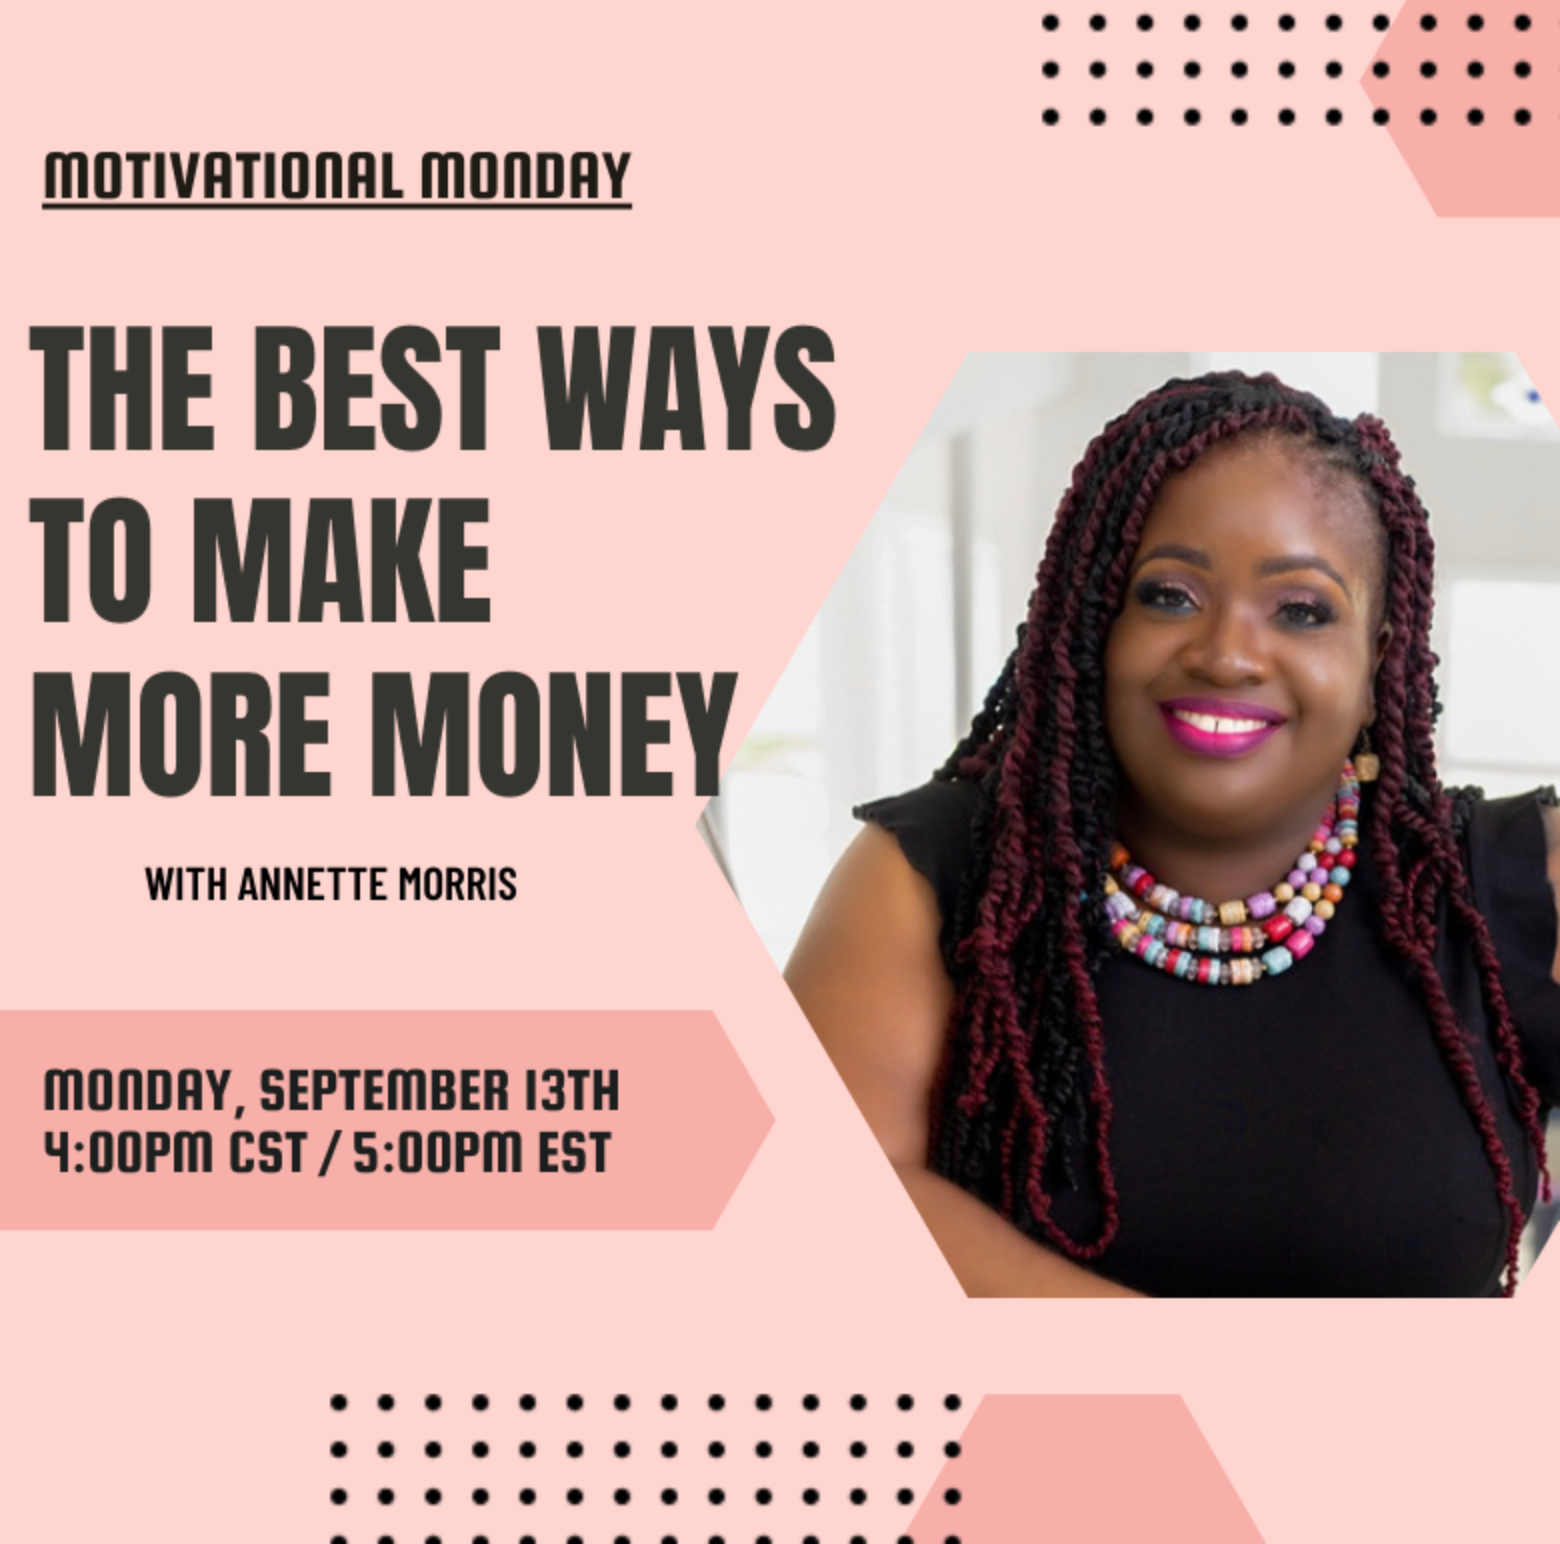 The Best Ways To Make More Money with Annette Morris